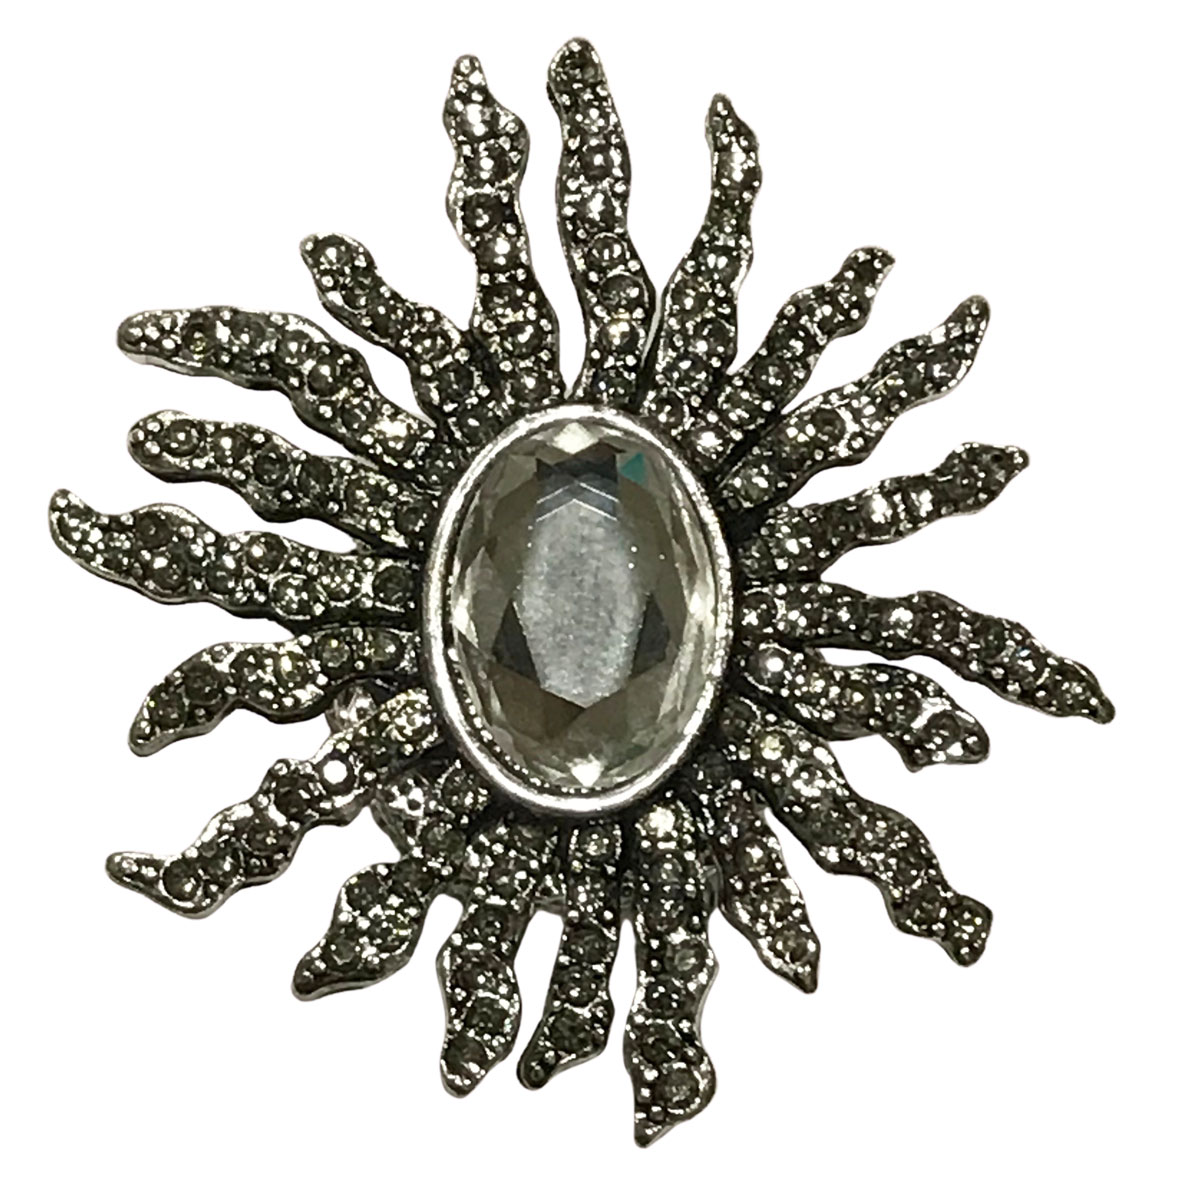 Magnetic Brooches - Artful Design - Plain Back - #614 Sunburst with Oval Crystal Magnetic Brooch